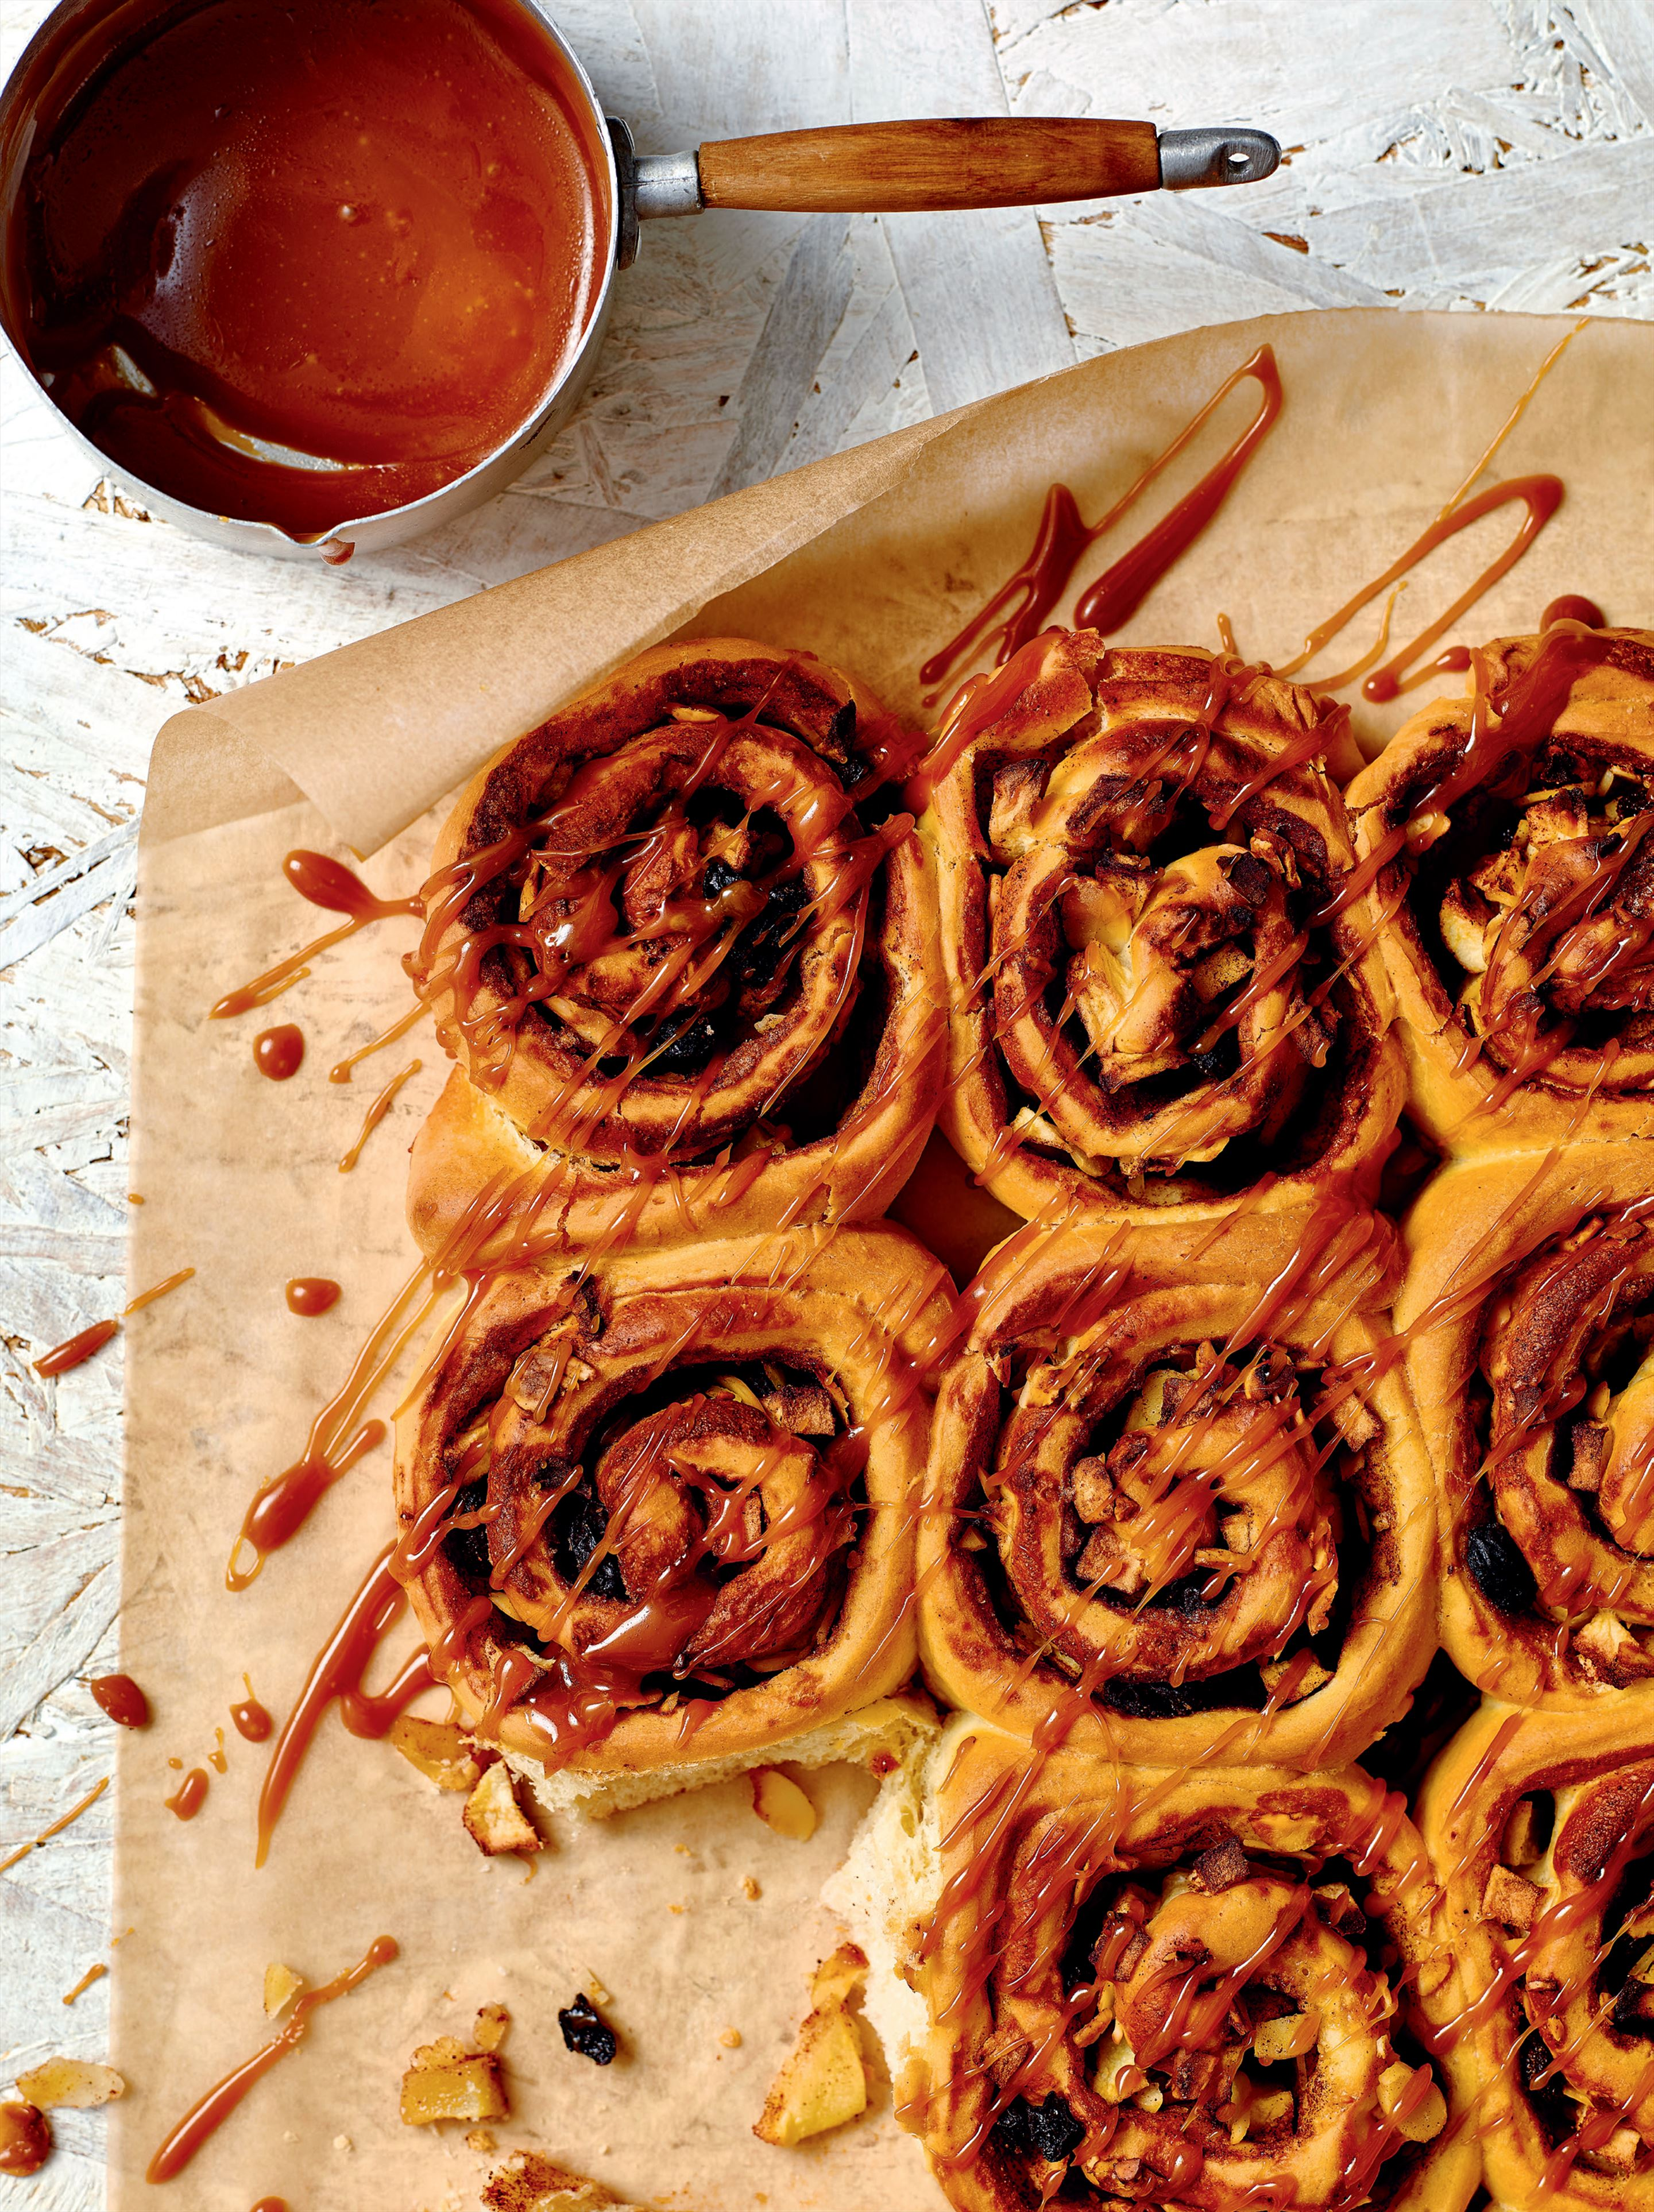 Apple and cinnamon Chelsea buns